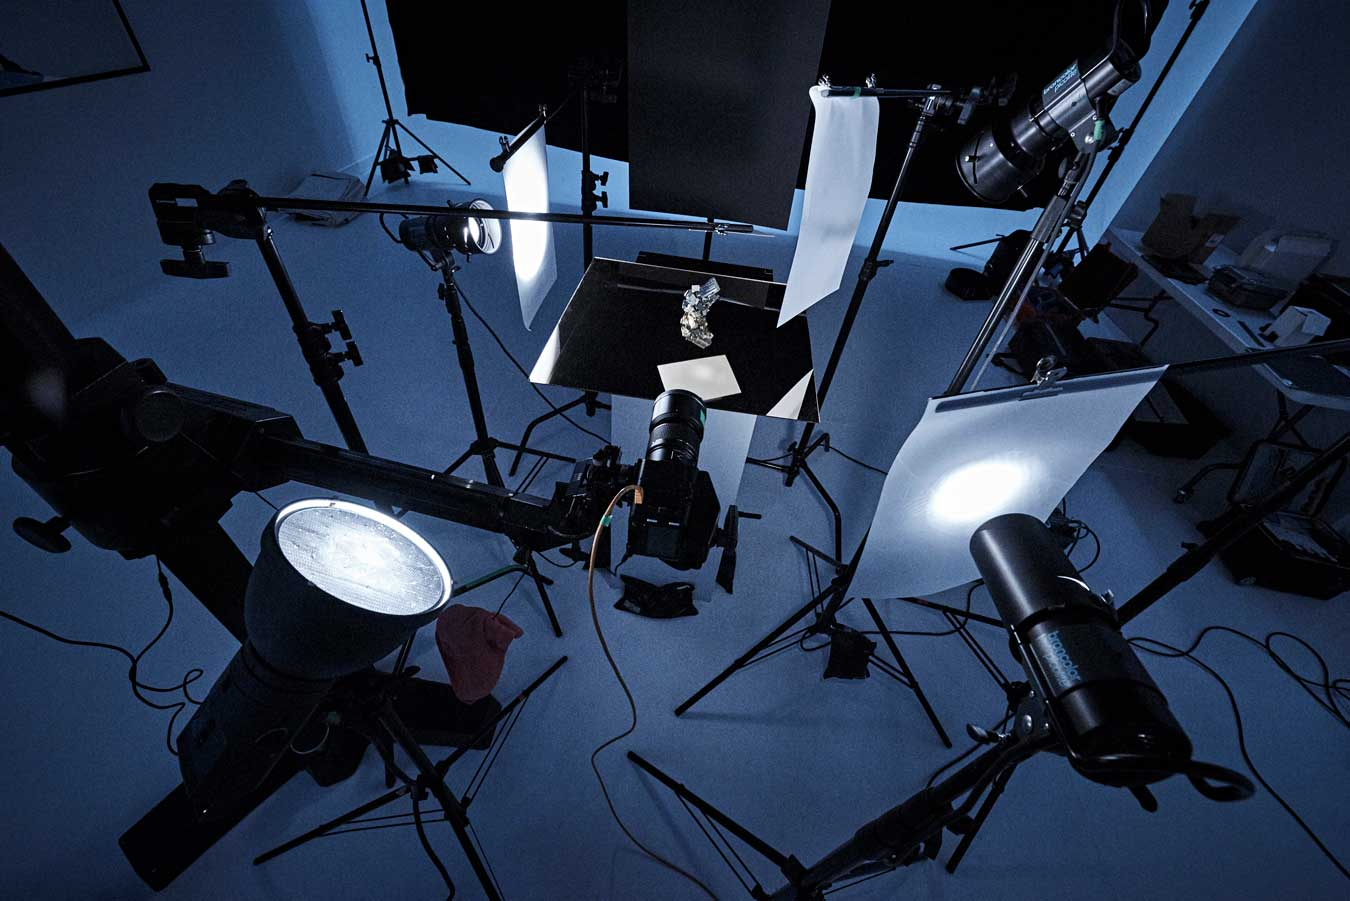 isamu-sawas-still-life-set-up-with-many-broncolor-picolites